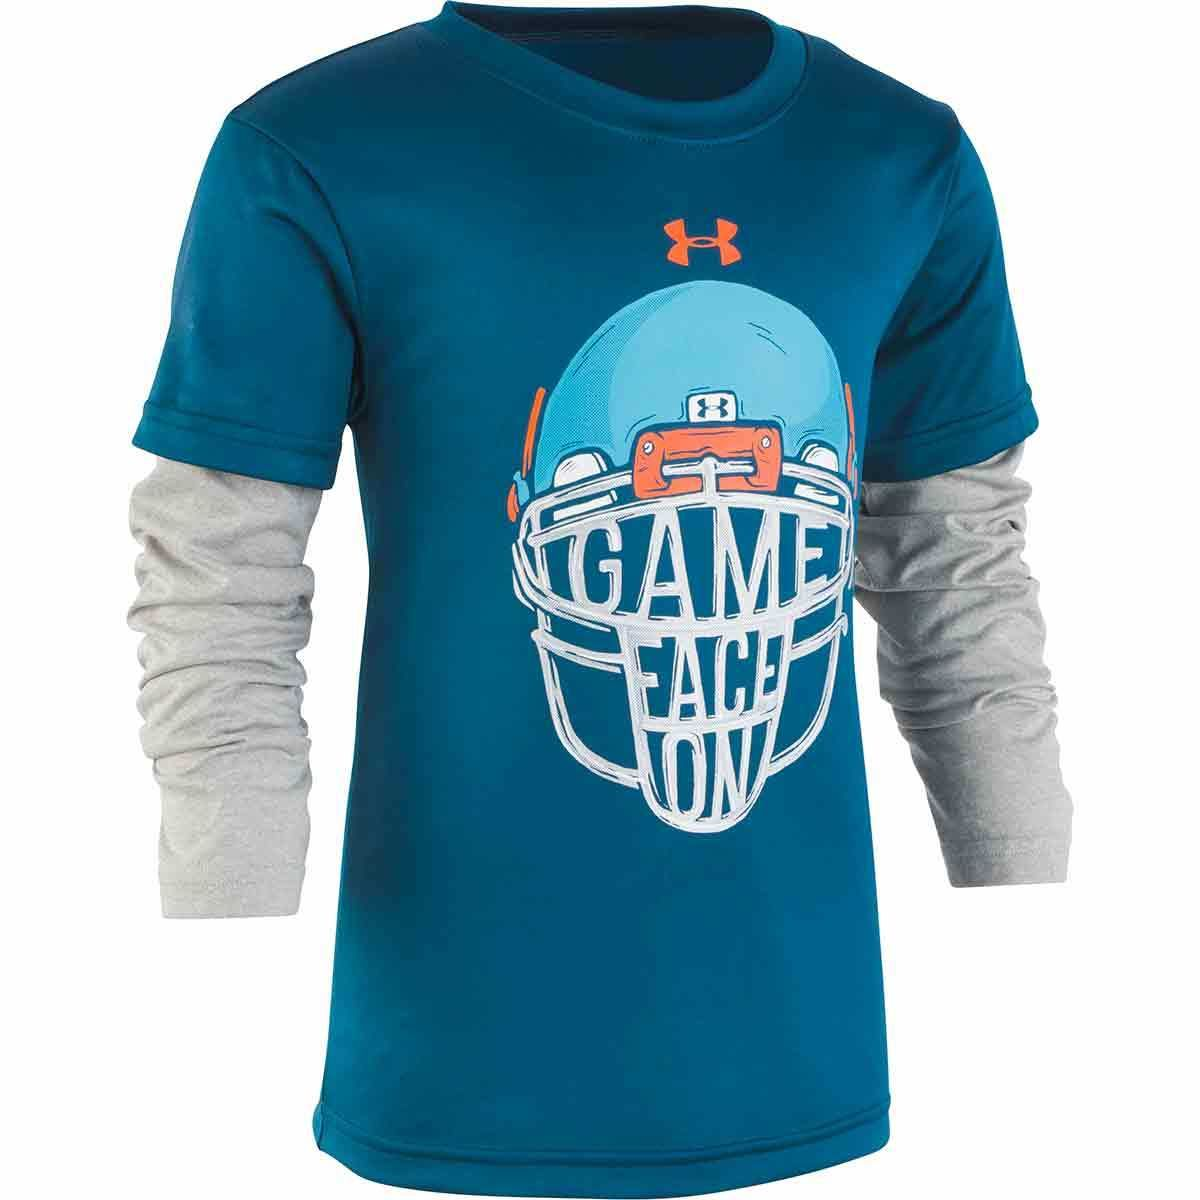 Under Armour Little Boys' Game Face Slider Long-Sleeve Tee - Green, 6